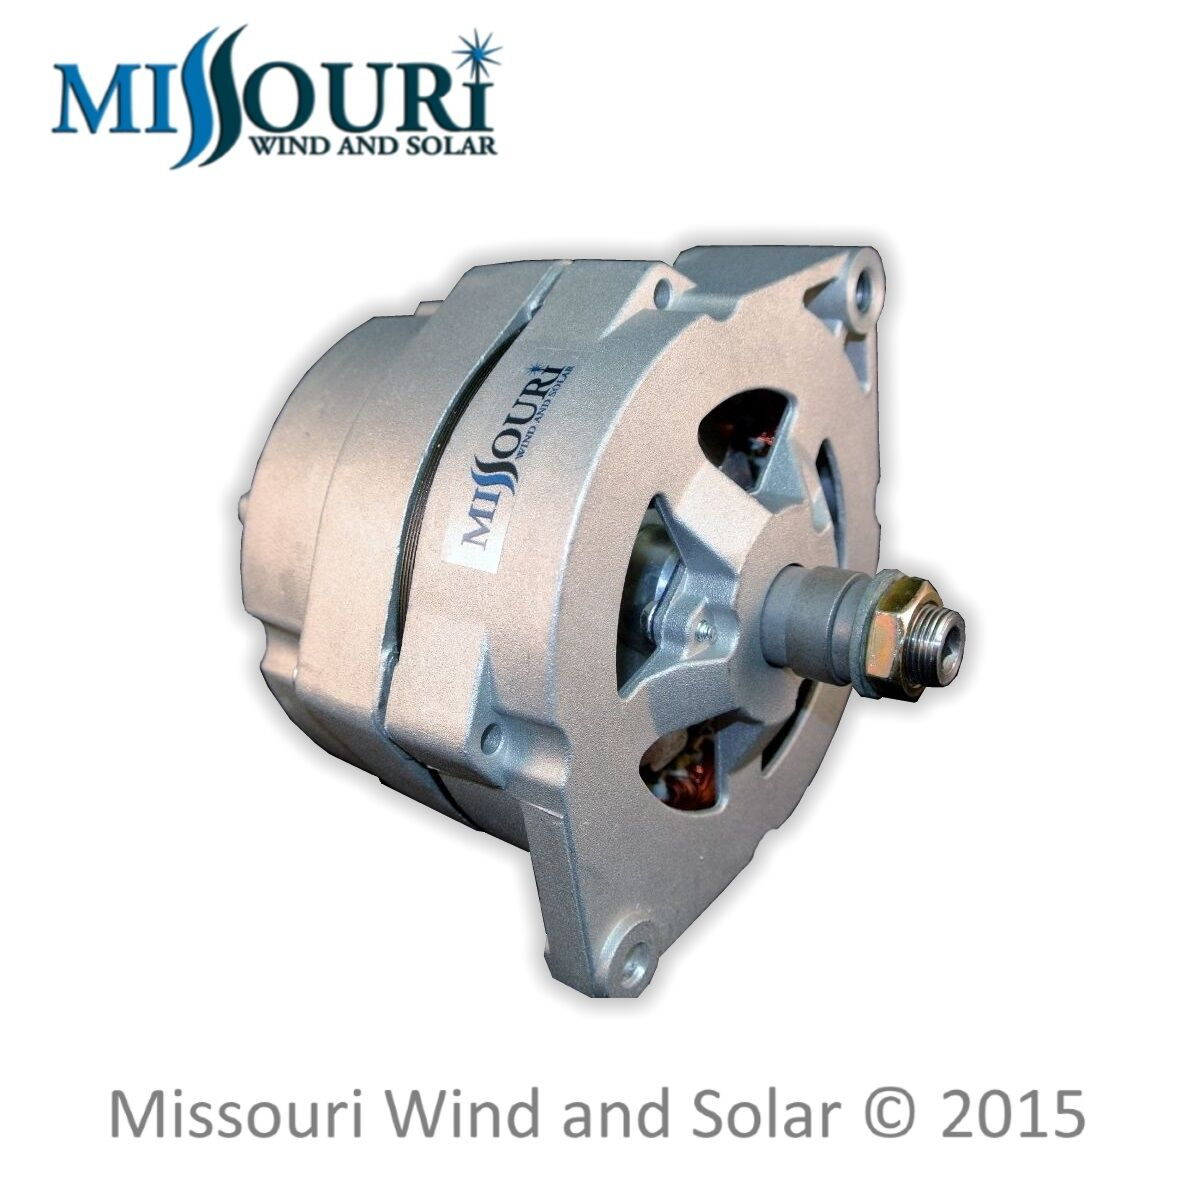 Car Alternator Wind Generator : Permanent magnet alternator volt dc for building a wind